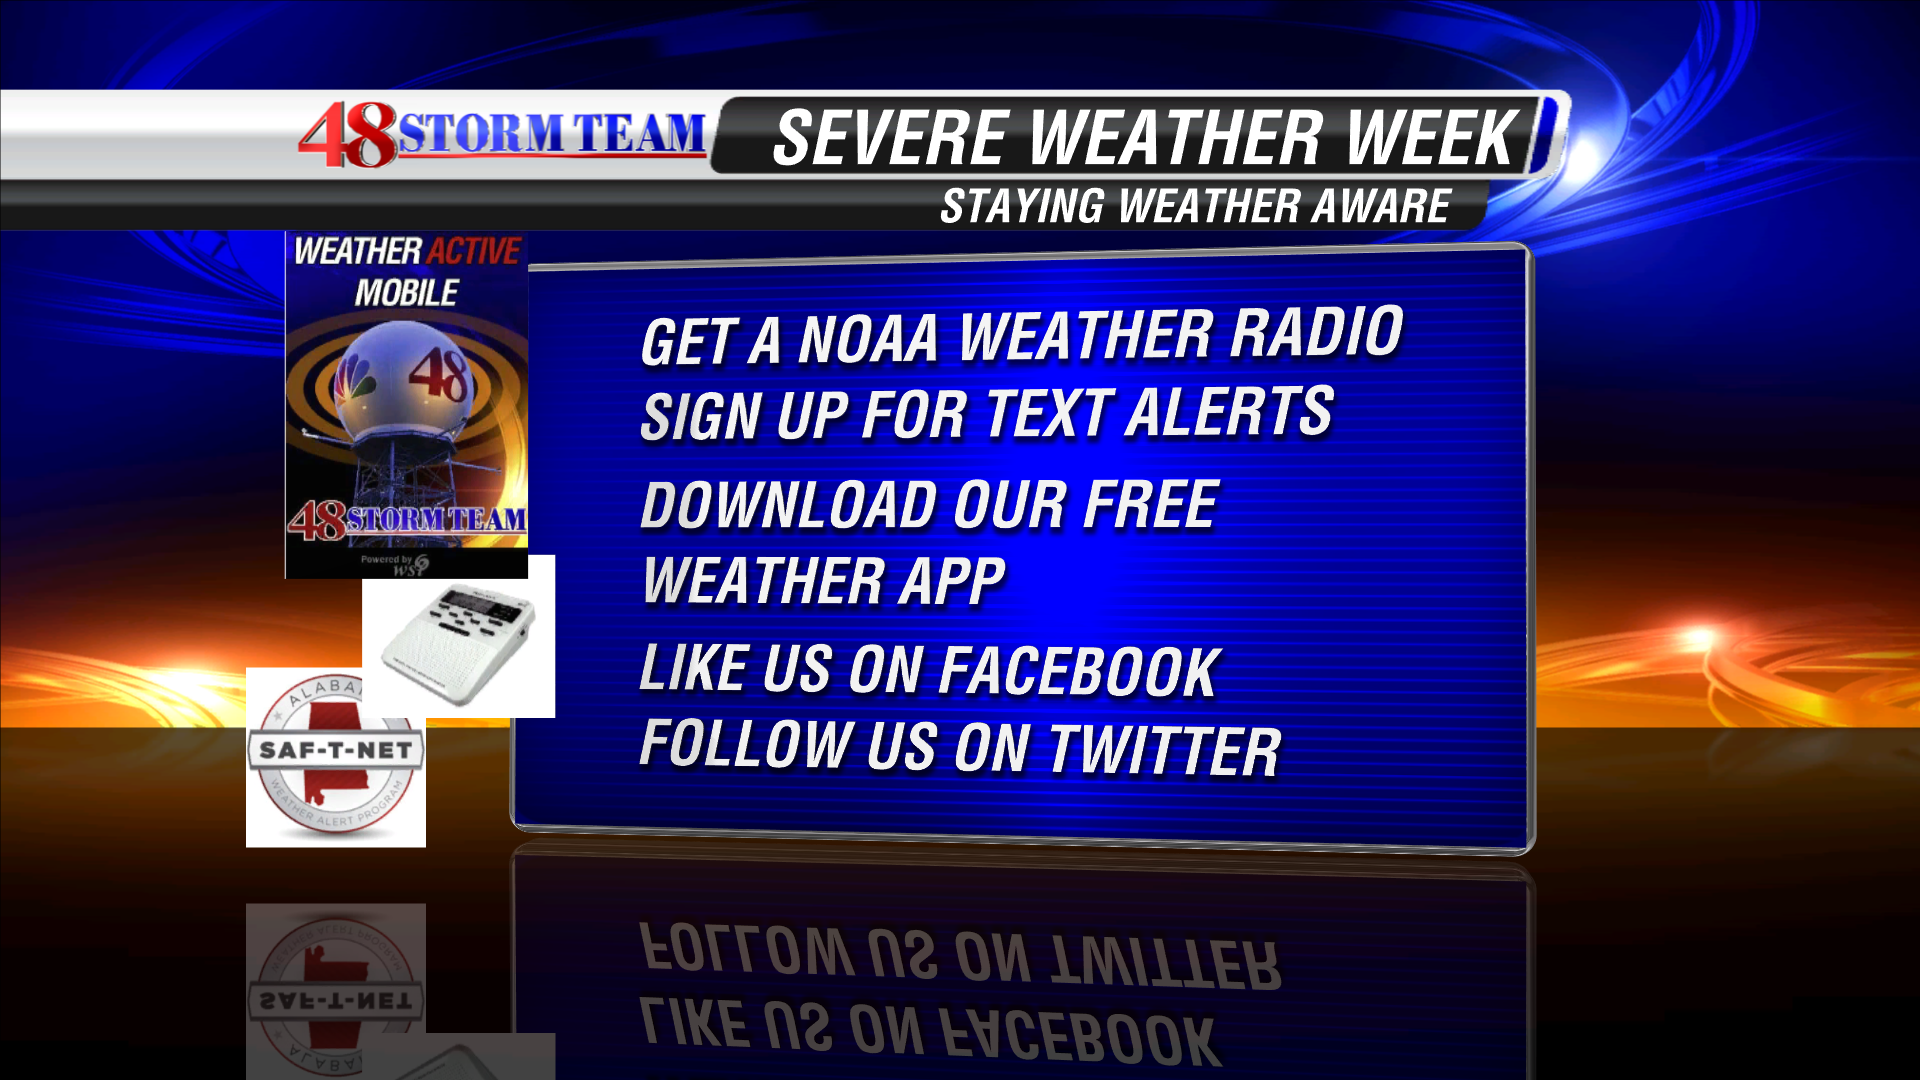 Severe Weather Awareness Week-Staying Weather Alert - WAFF Weather